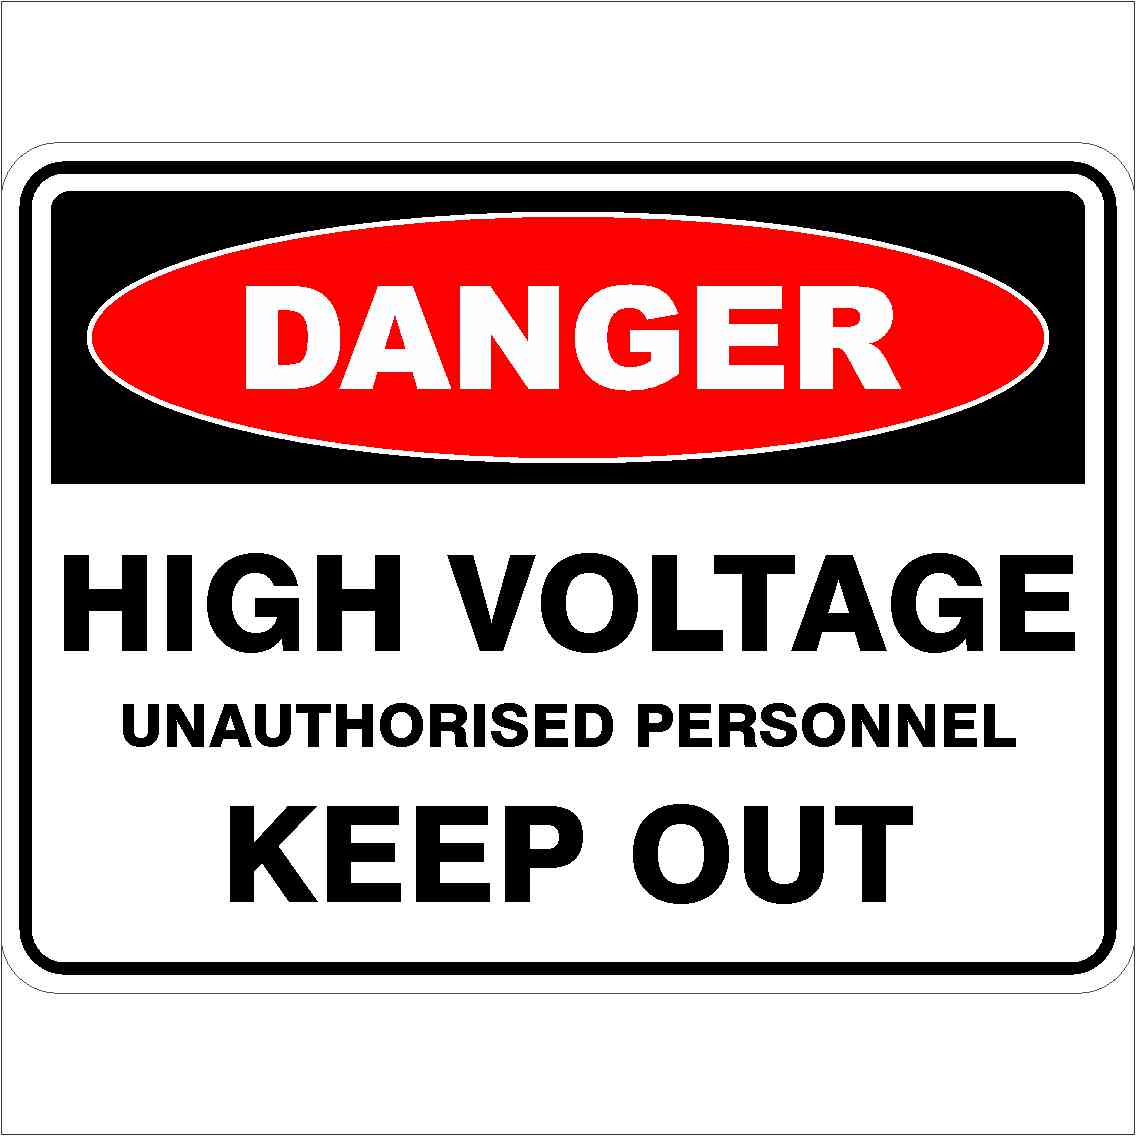 Danger Signs HIGH VOLTAGE UNAUTHORISED PERSONNEL KEEP OUT